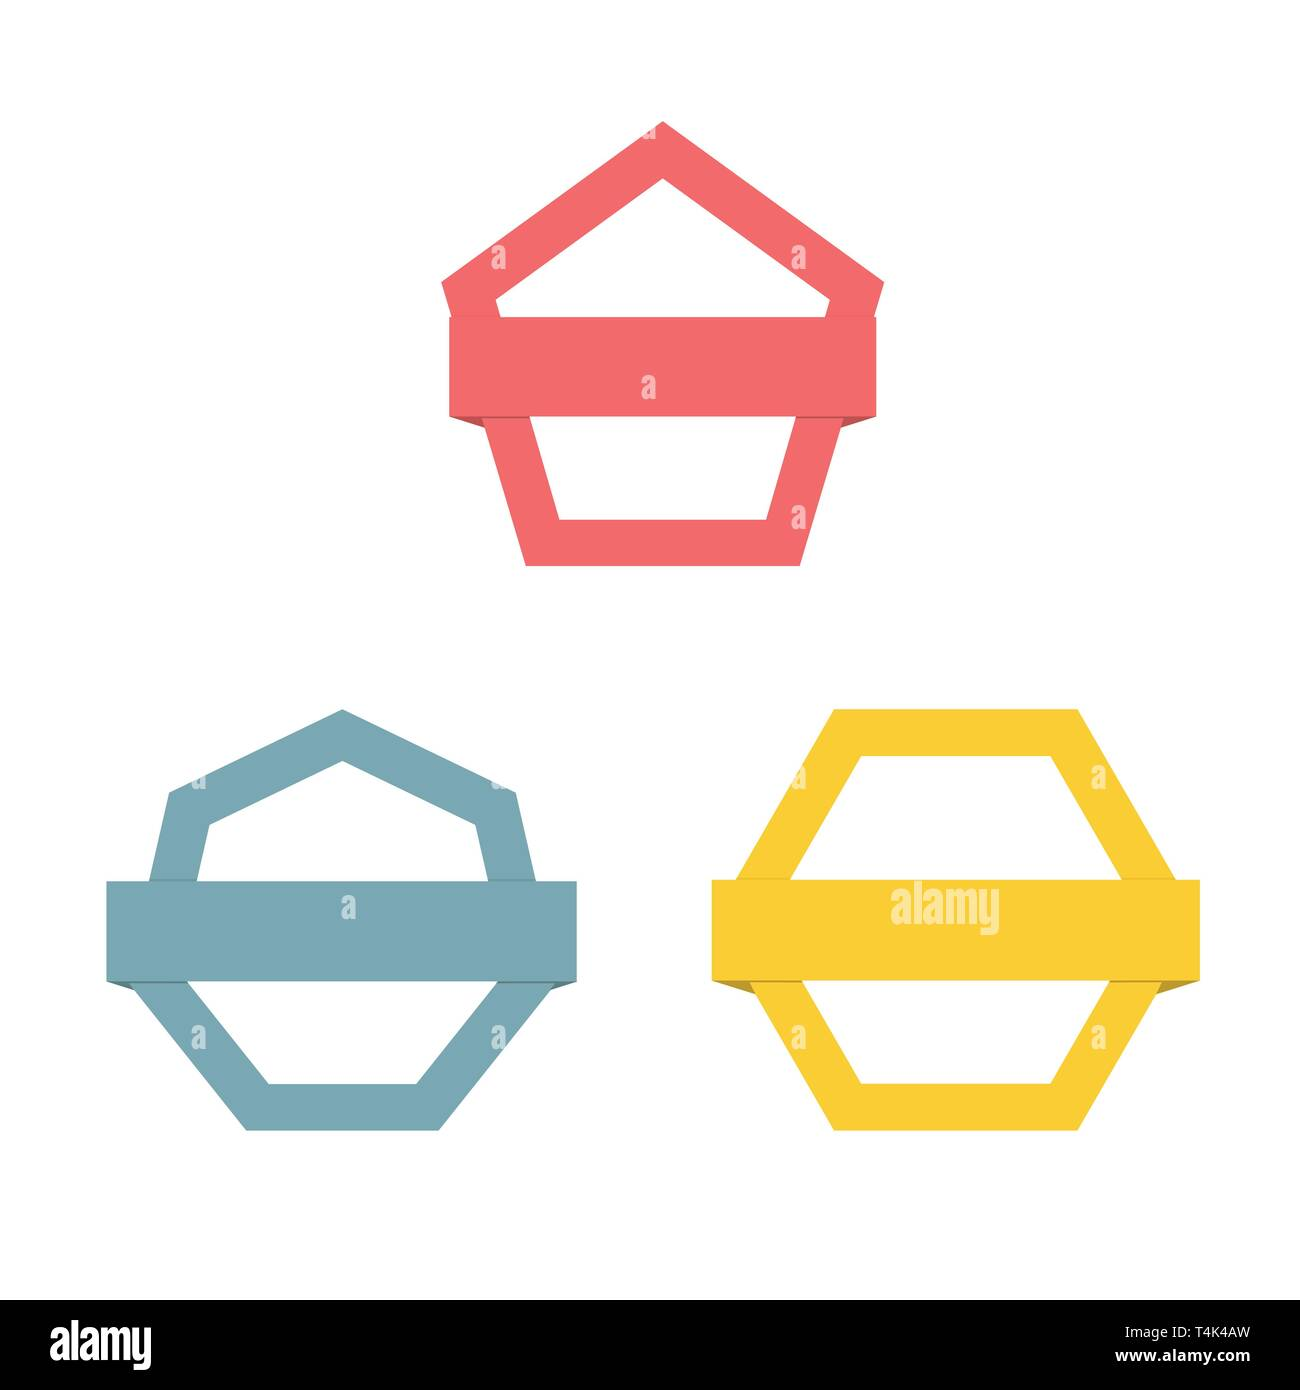 Modern abstract vector logo or element design. Best for identity and logotypes. Simple shape. - Stock Image